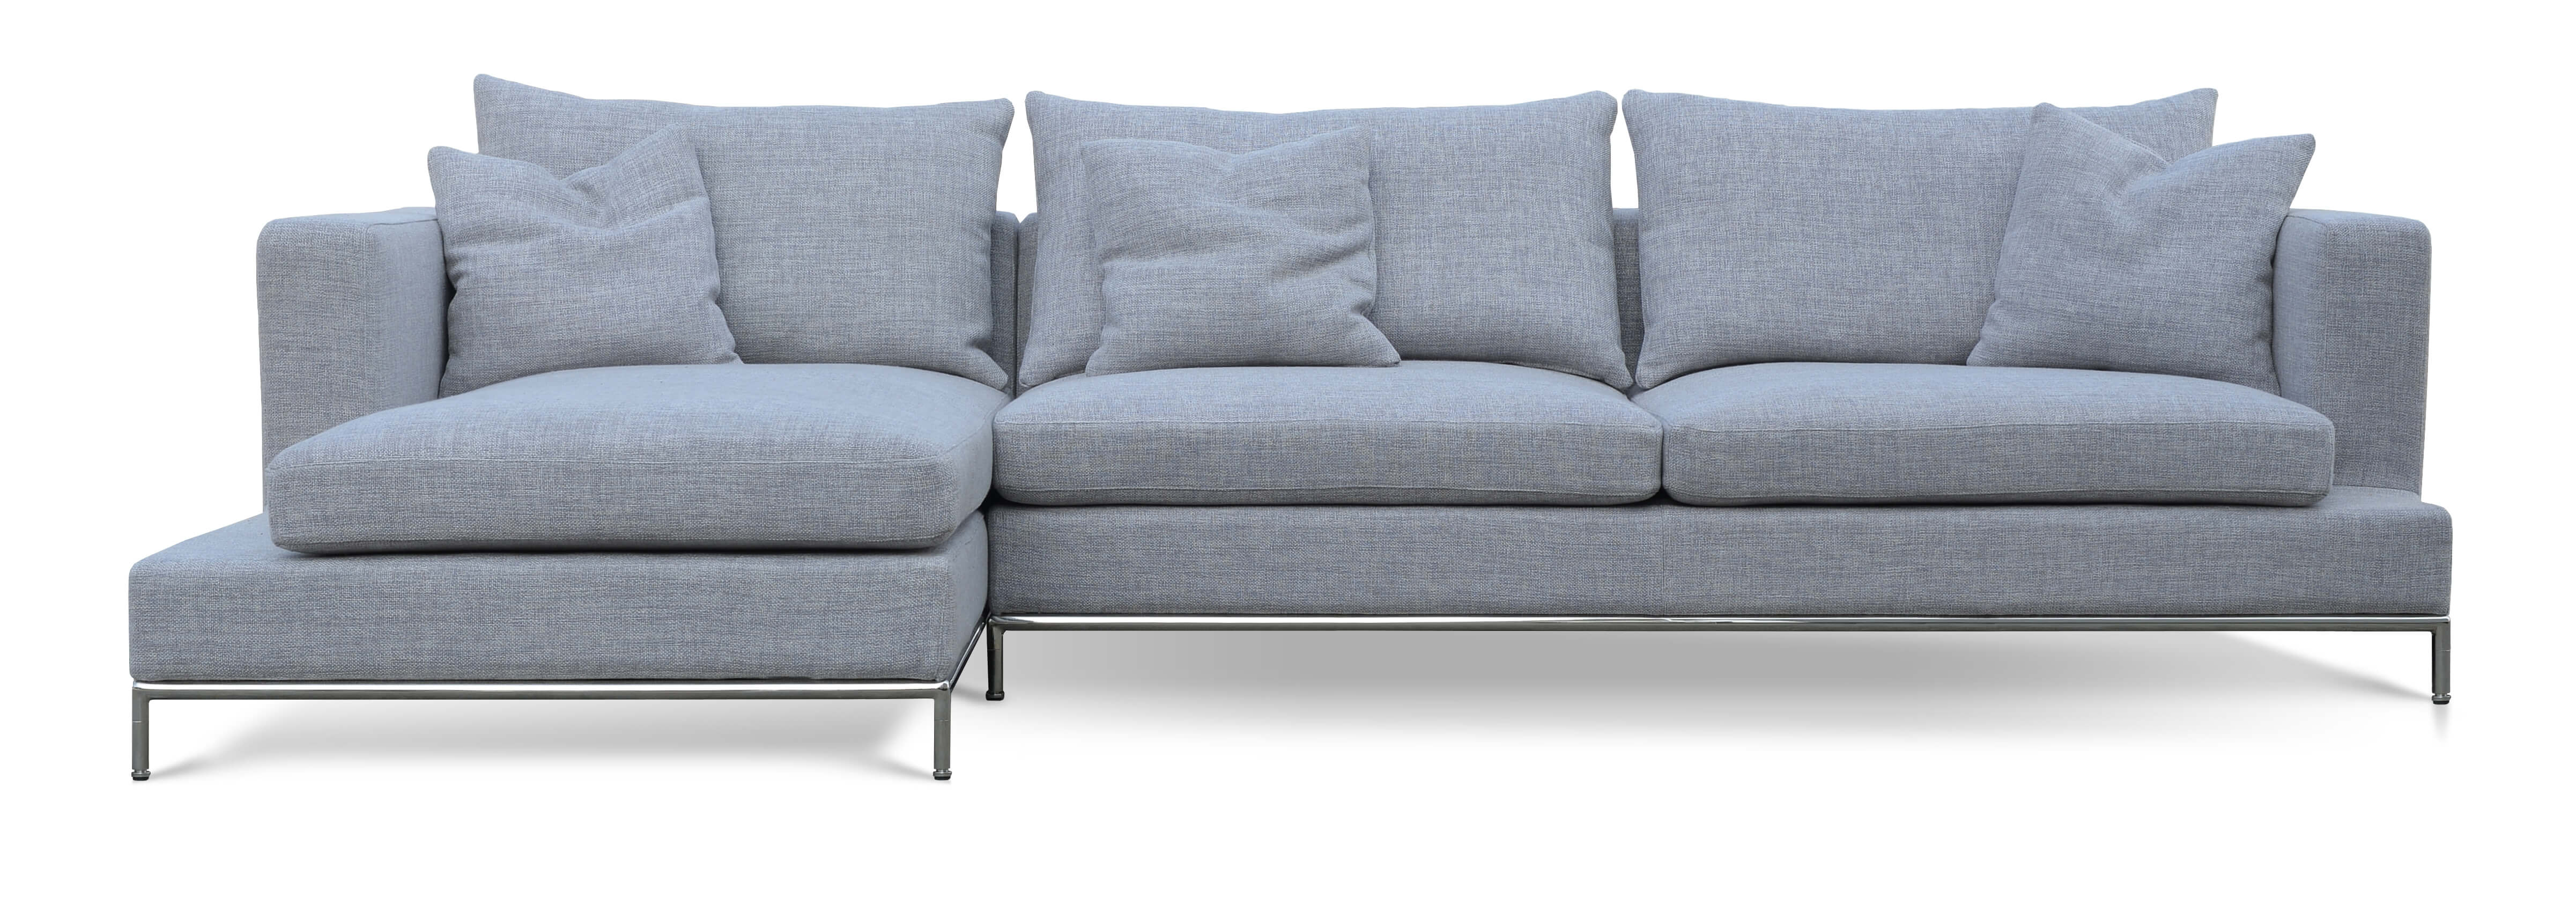 simena sectional left arm chaise grey tweed buy online at best  - simena sectional left arm chaise grey tweed buy online at best price sohomod